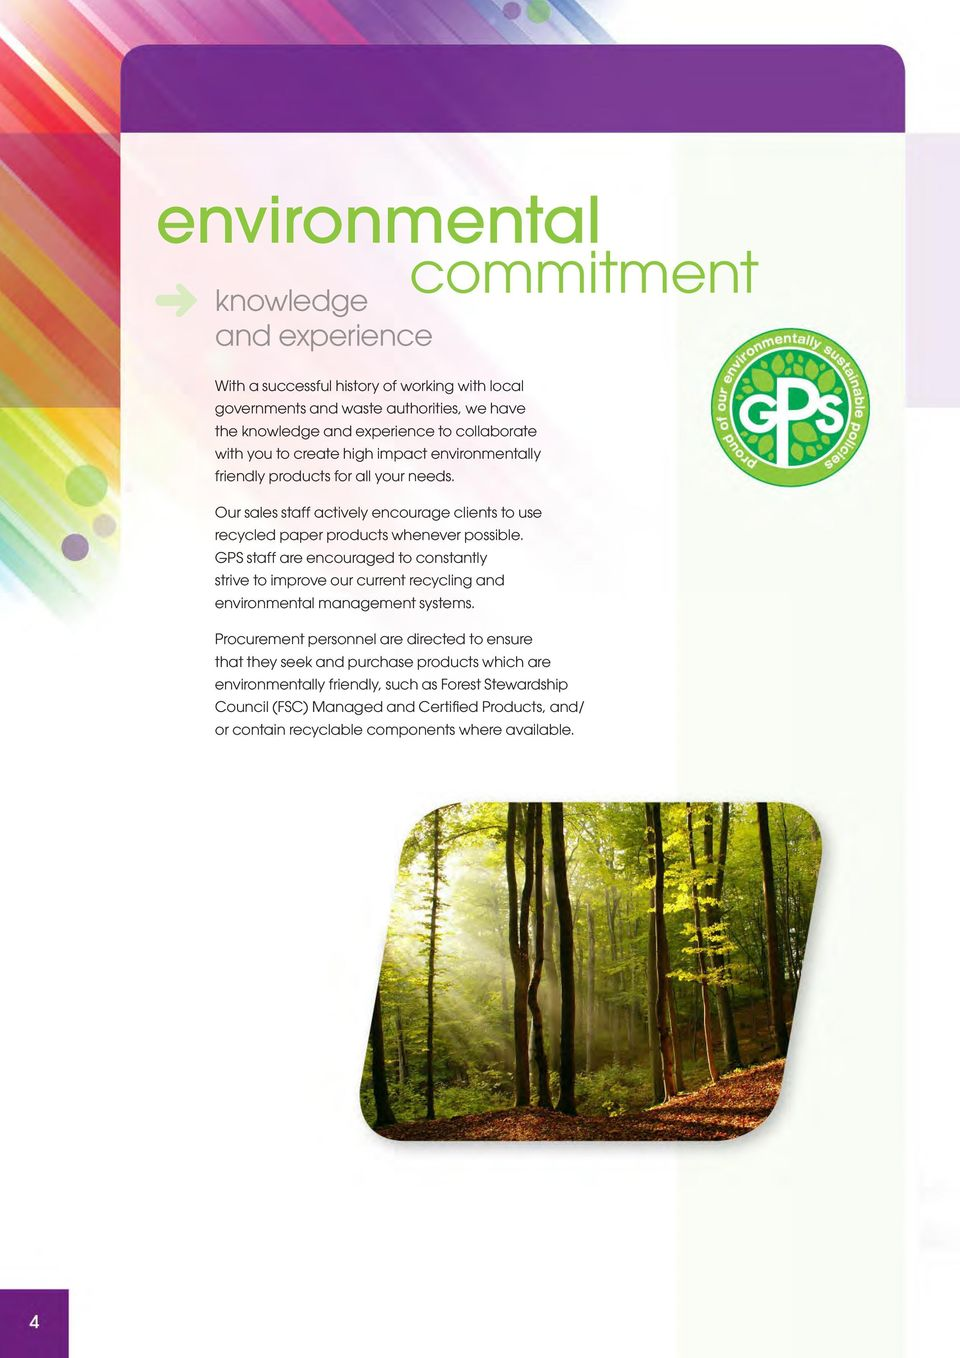 GPS staff are encouraged to constantly strive to improve our current recycling and environmental management systems.